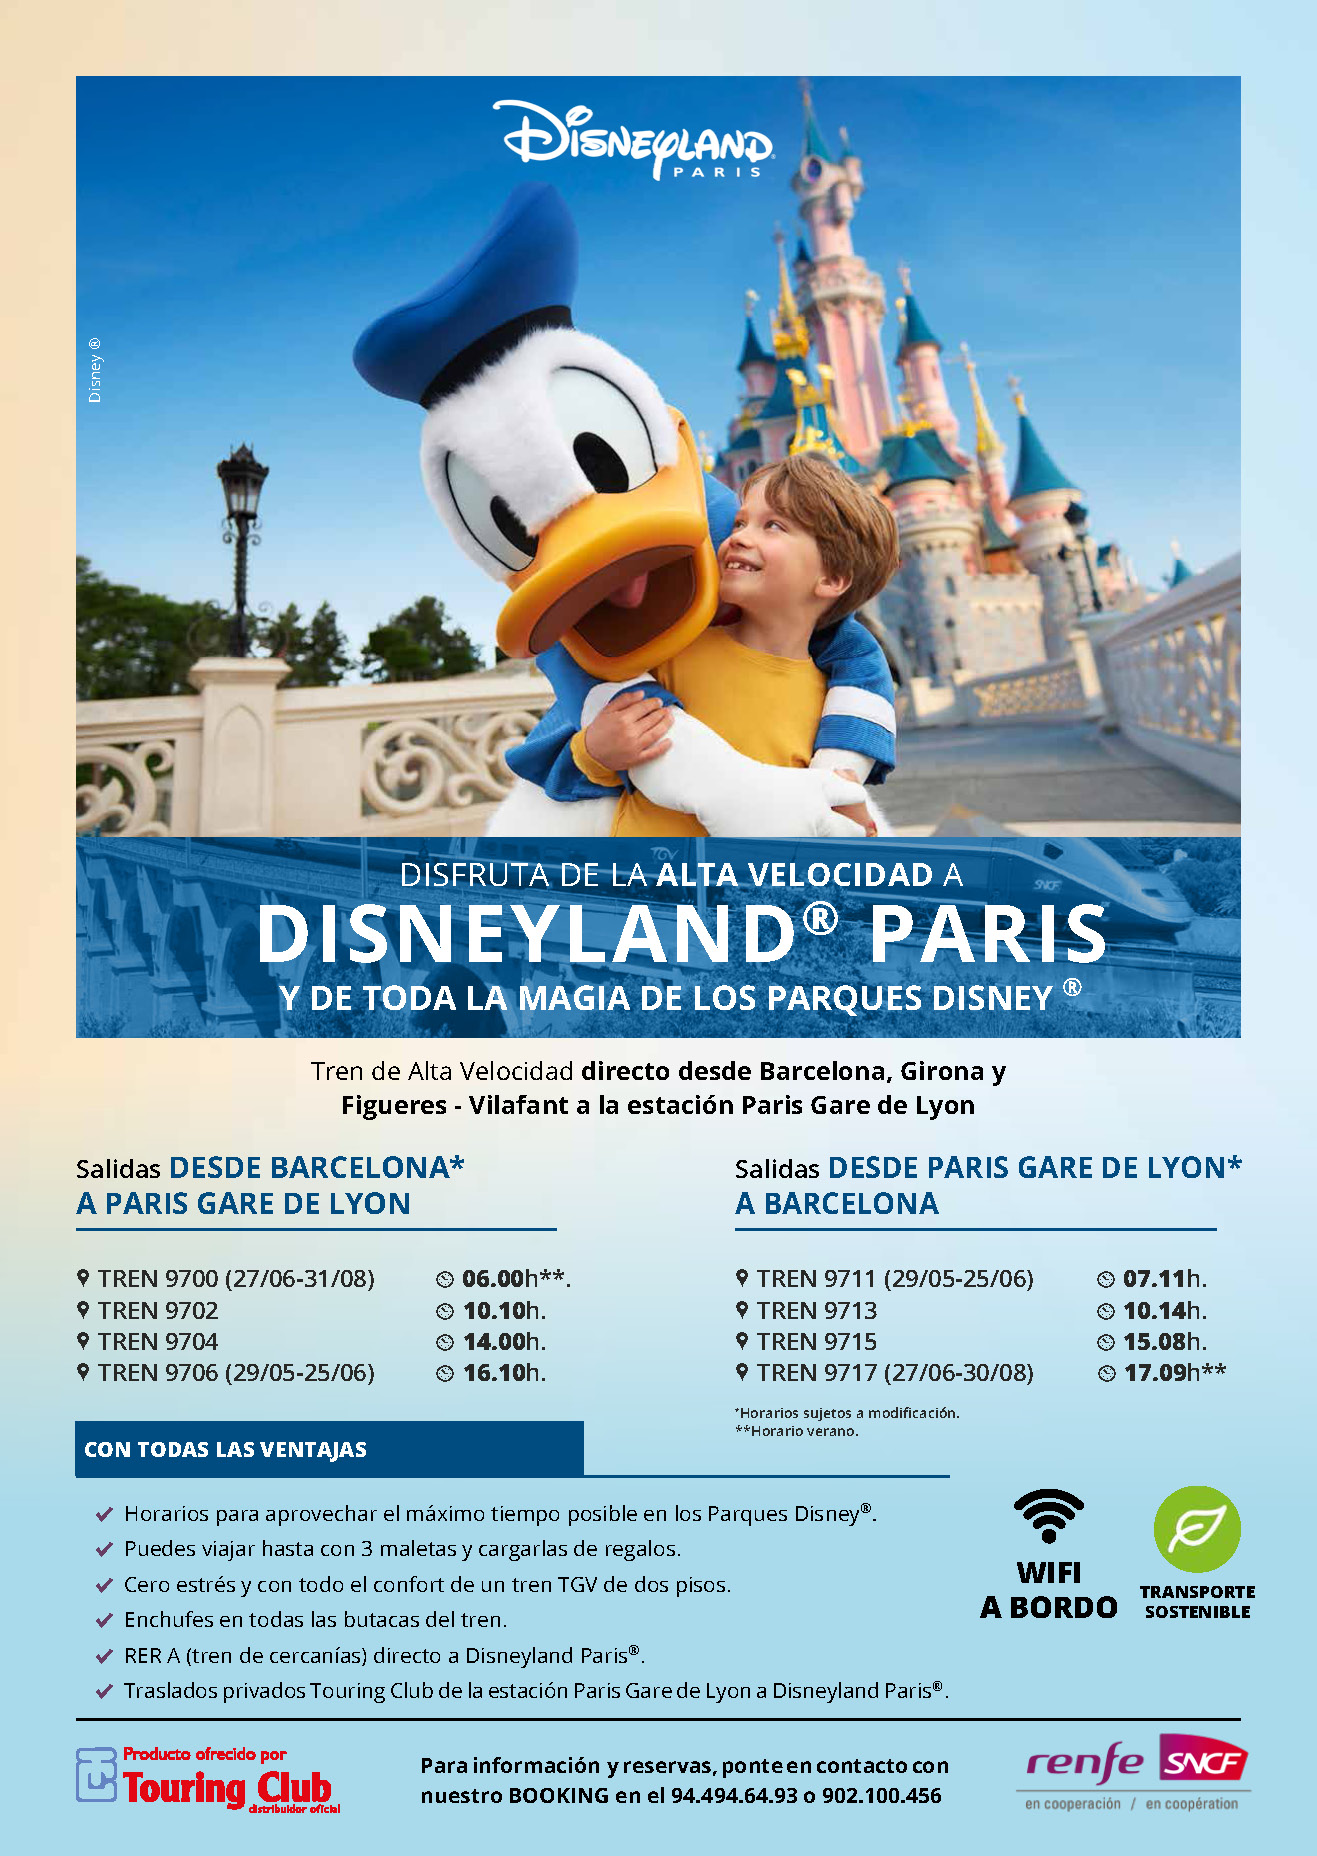 Guia Touring Club Disneyland Paris en tren 2020